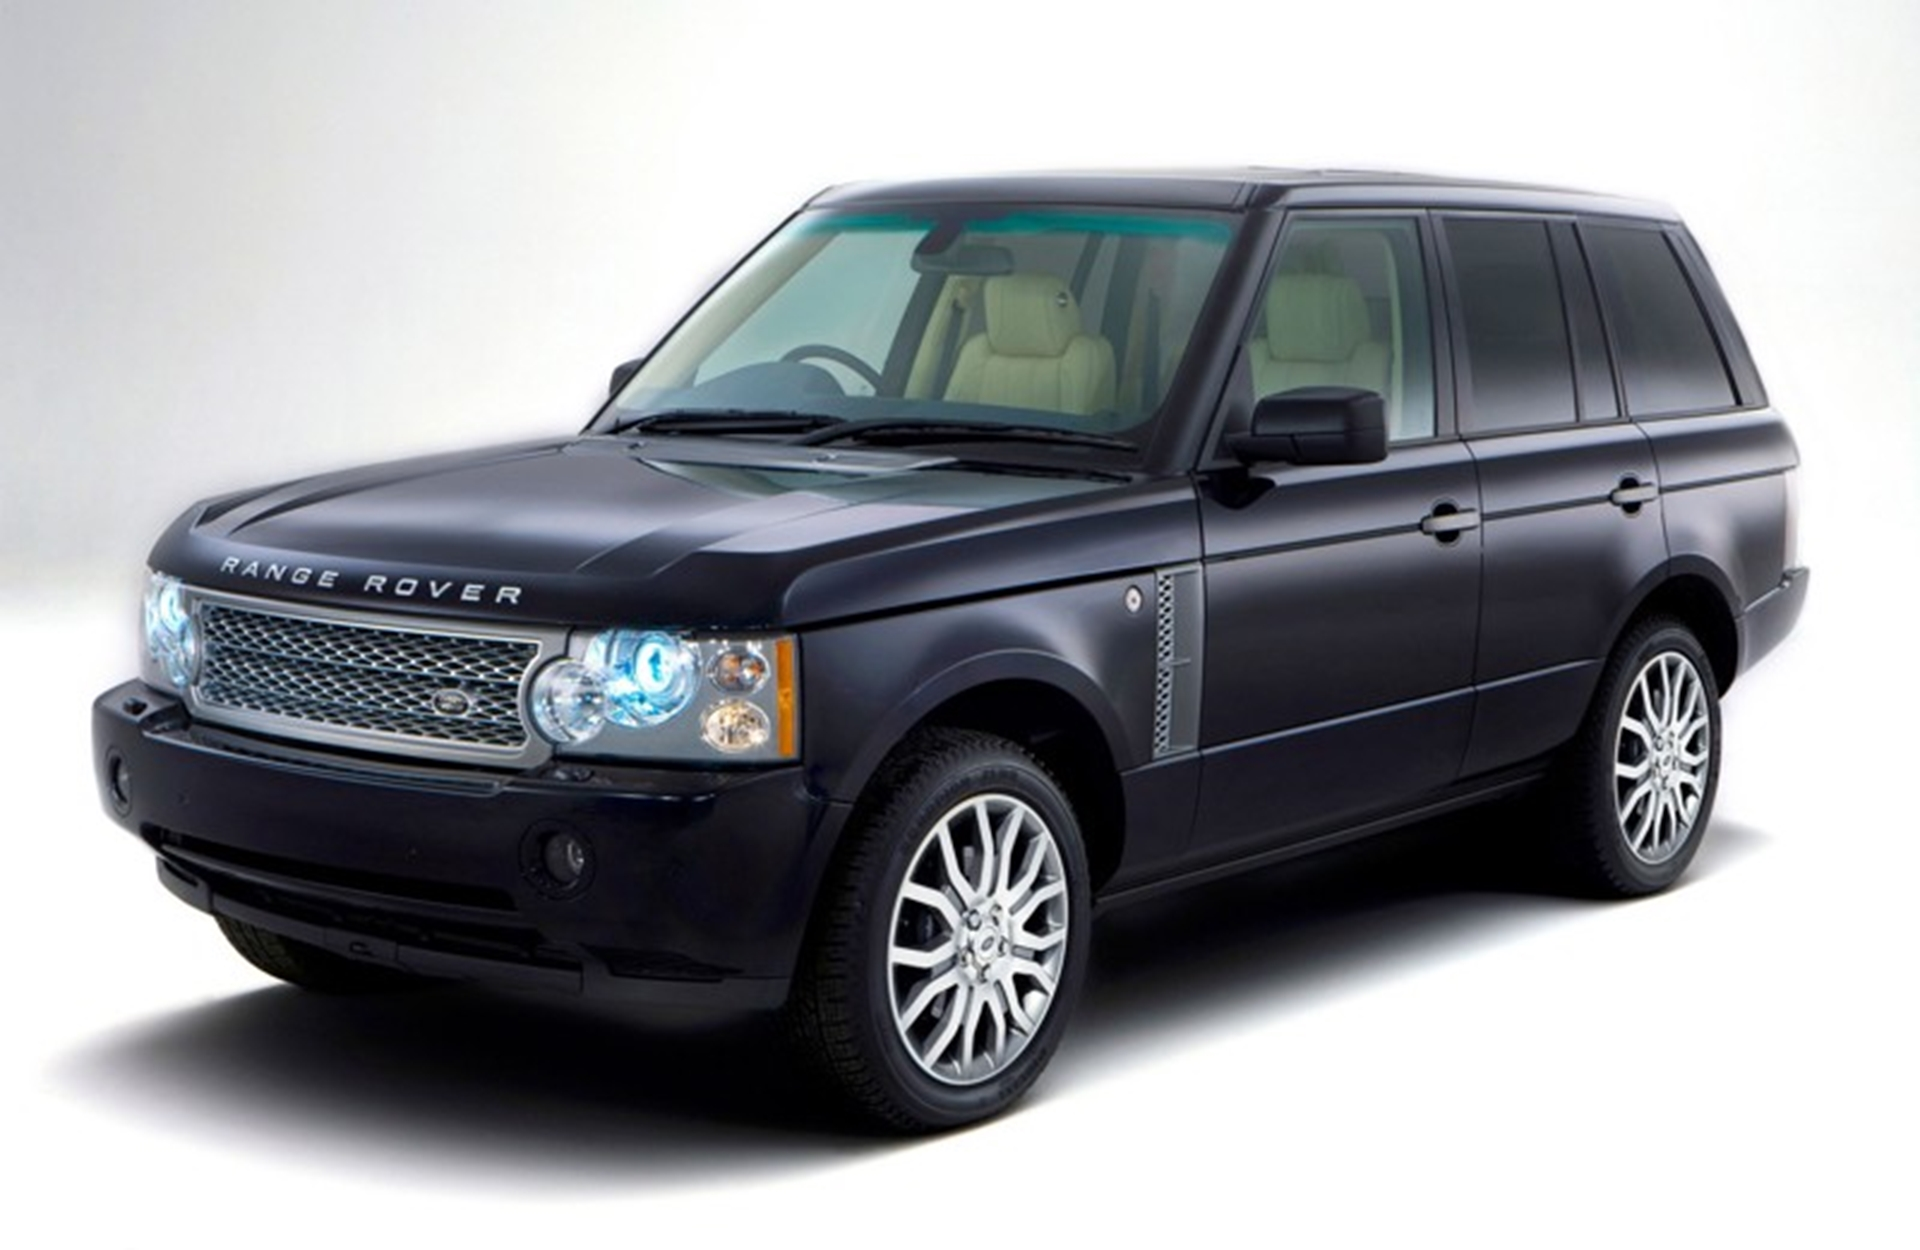 jims 2008 range rover autobiography. Black Bedroom Furniture Sets. Home Design Ideas